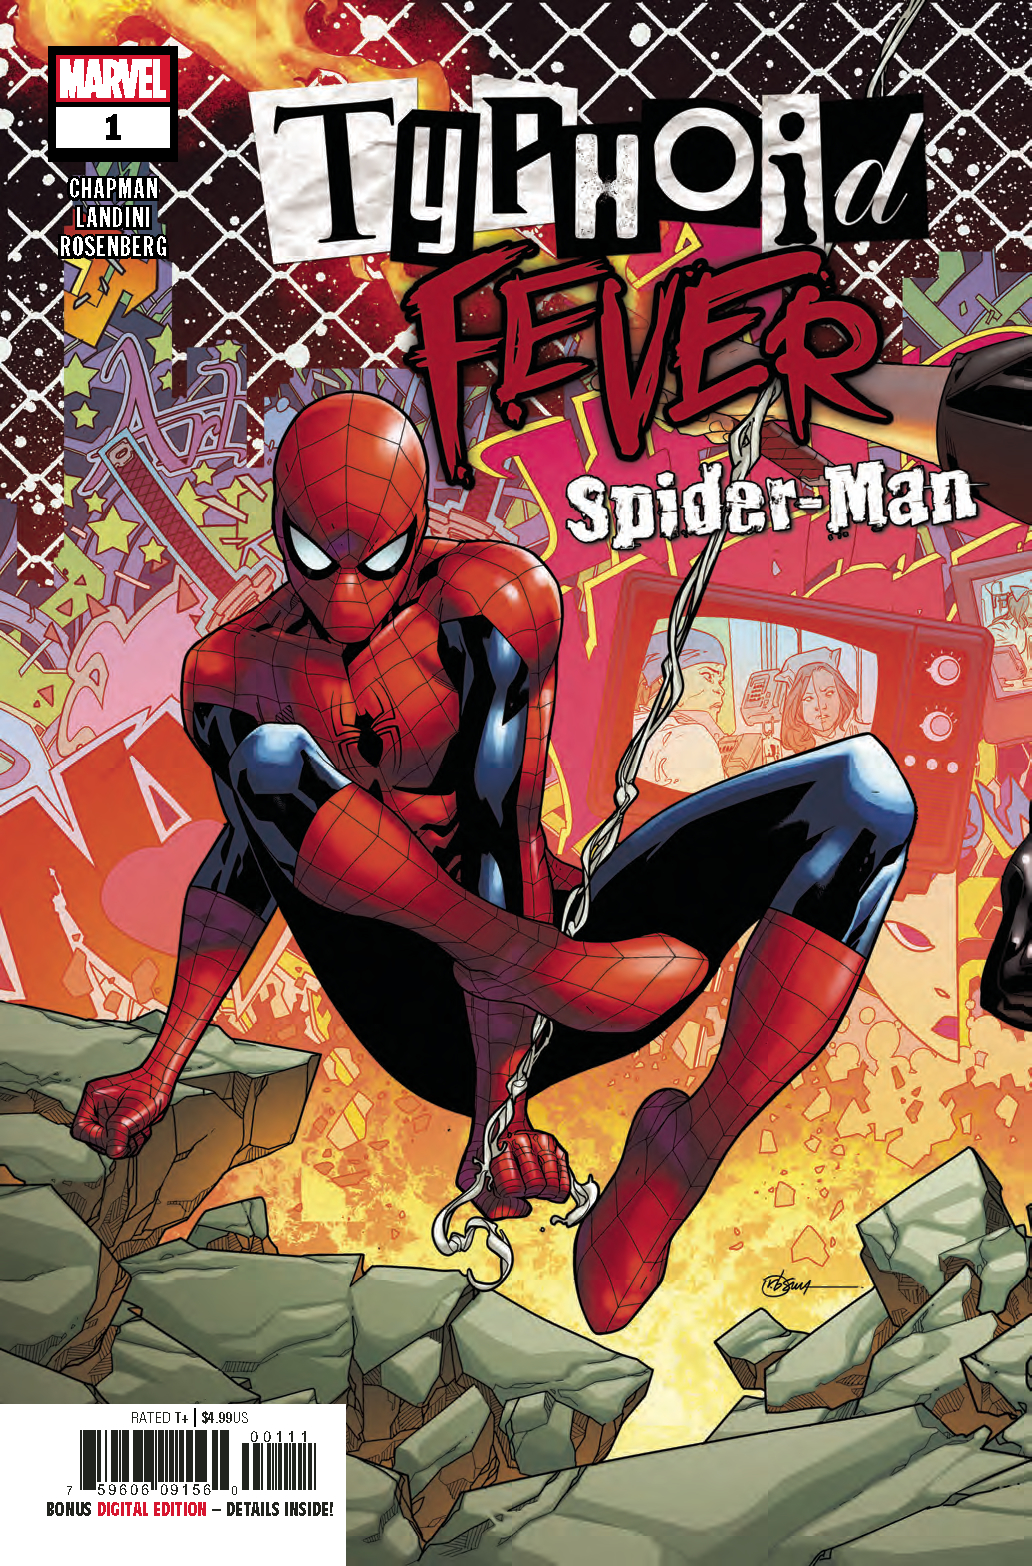 TYPHOID FEVER SPIDER-MAN #1